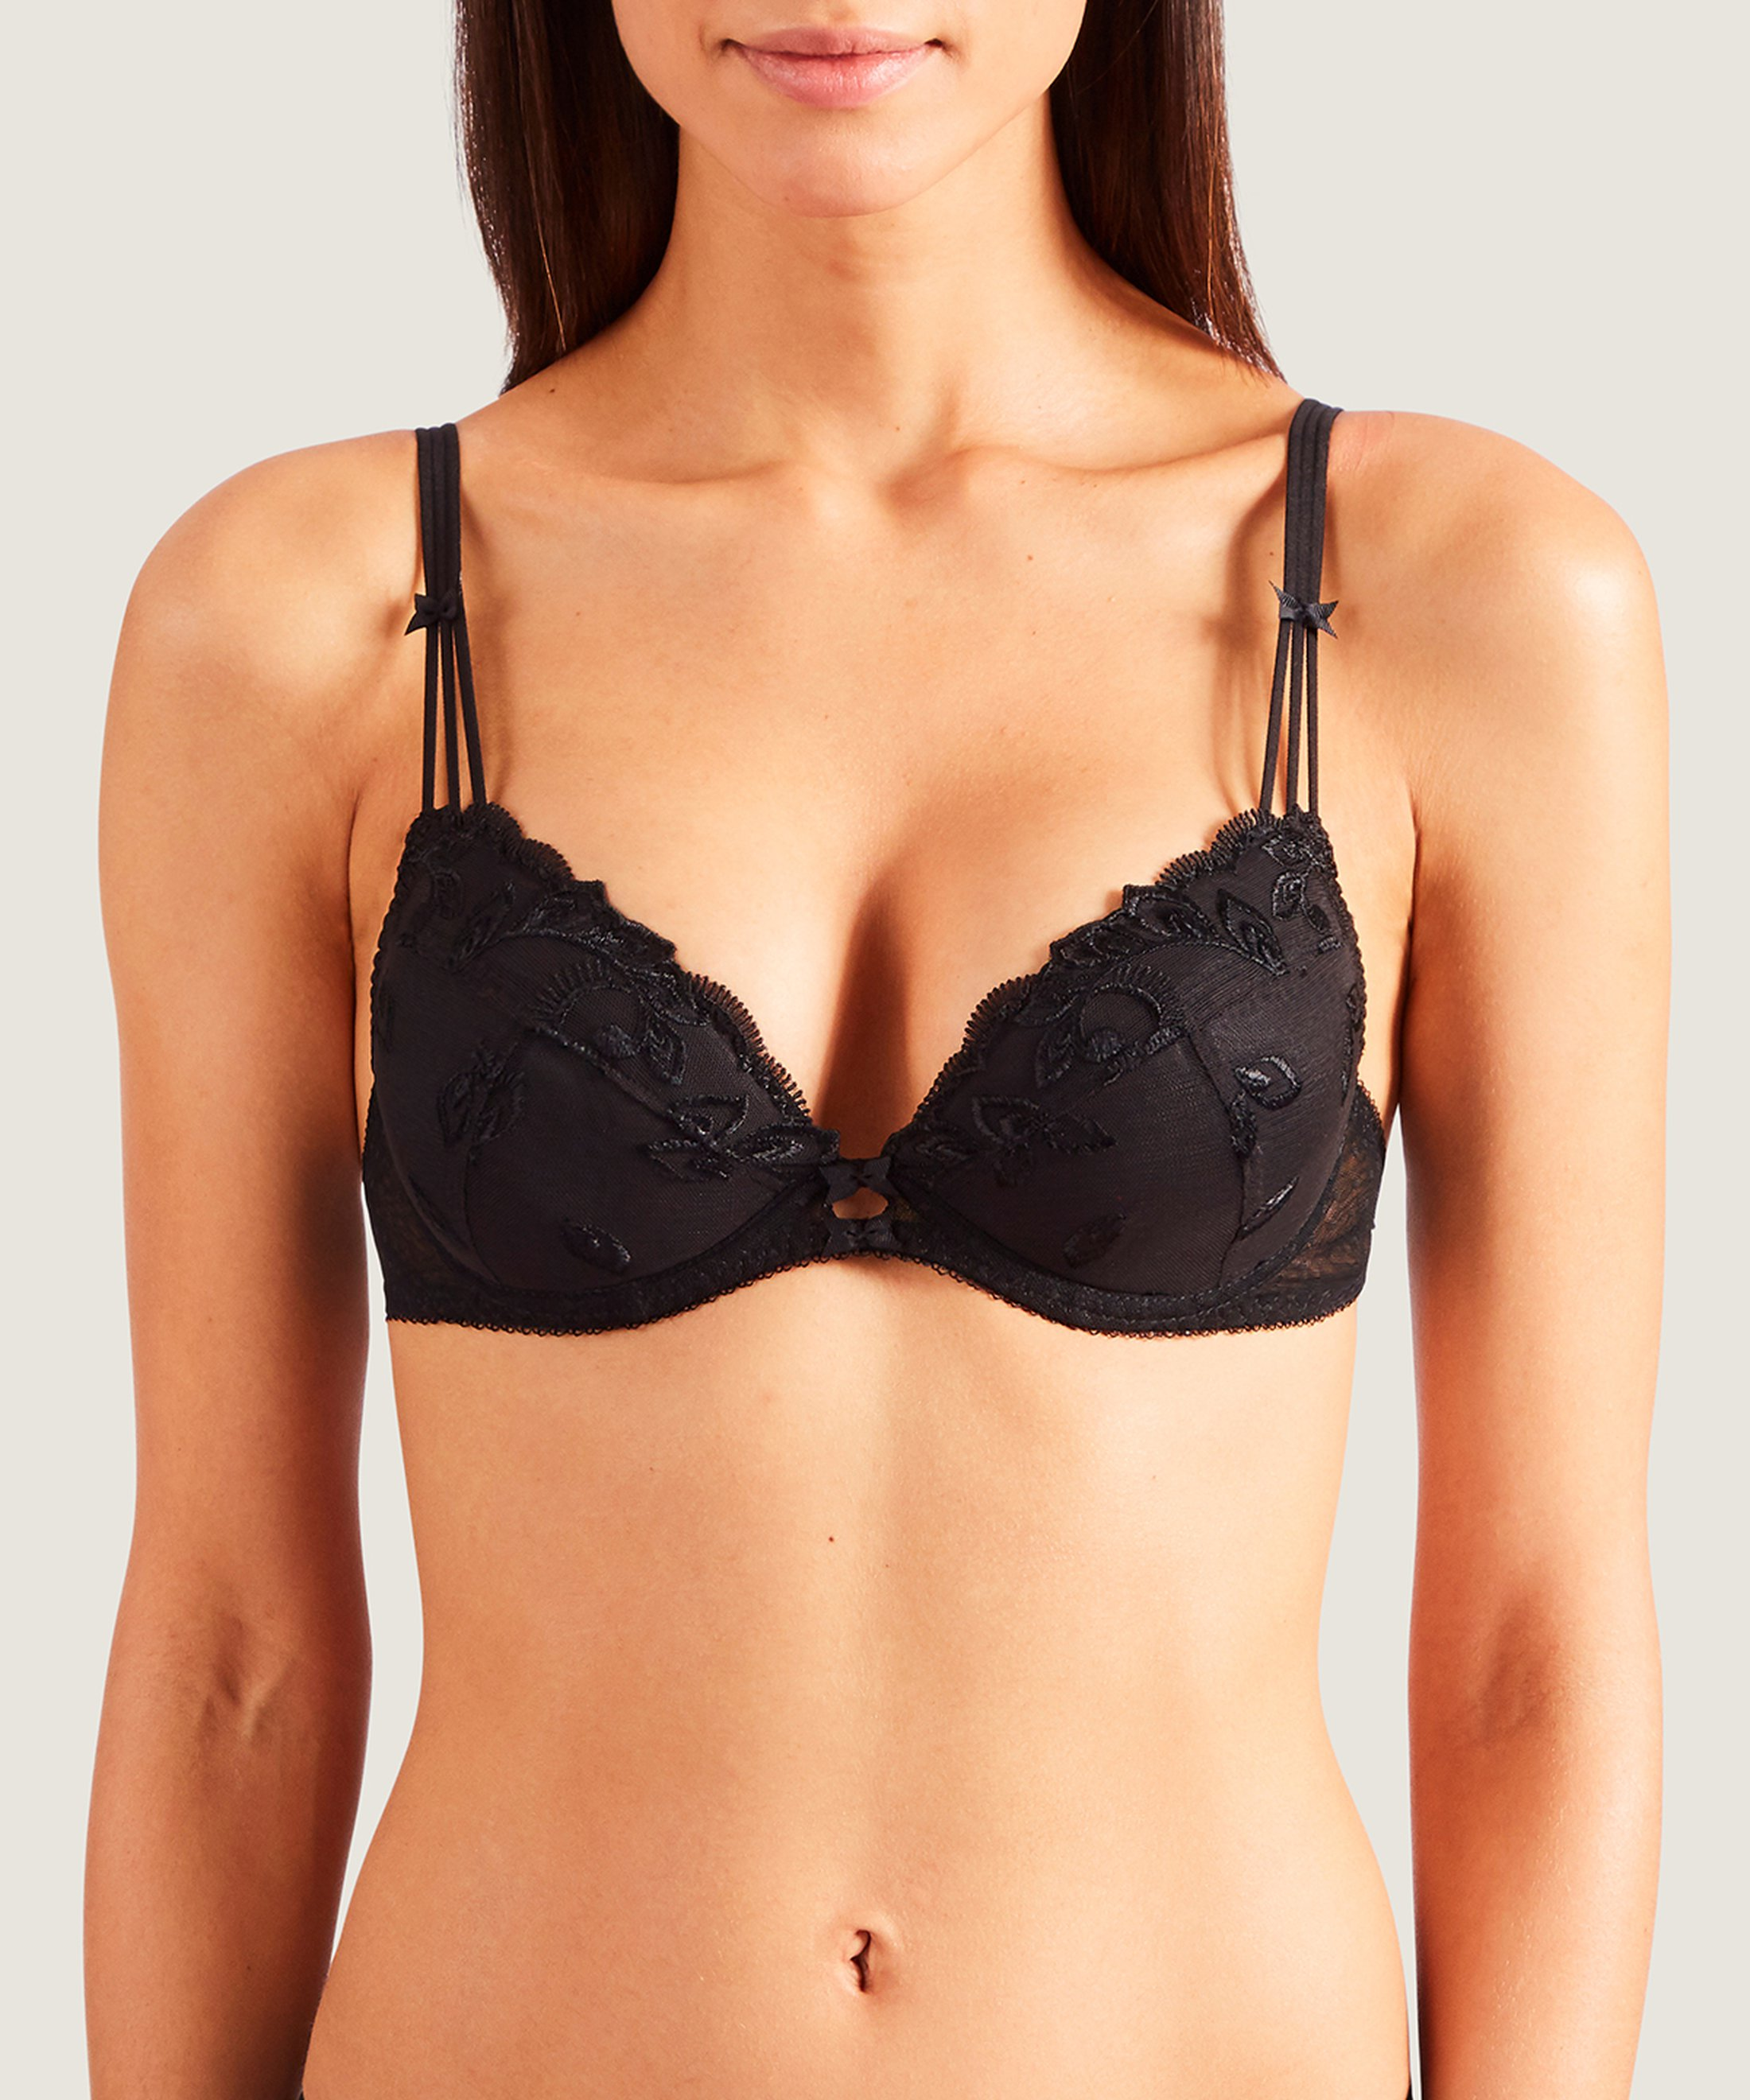 AU BAL DE FLORE Push-up bra Black | Aubade